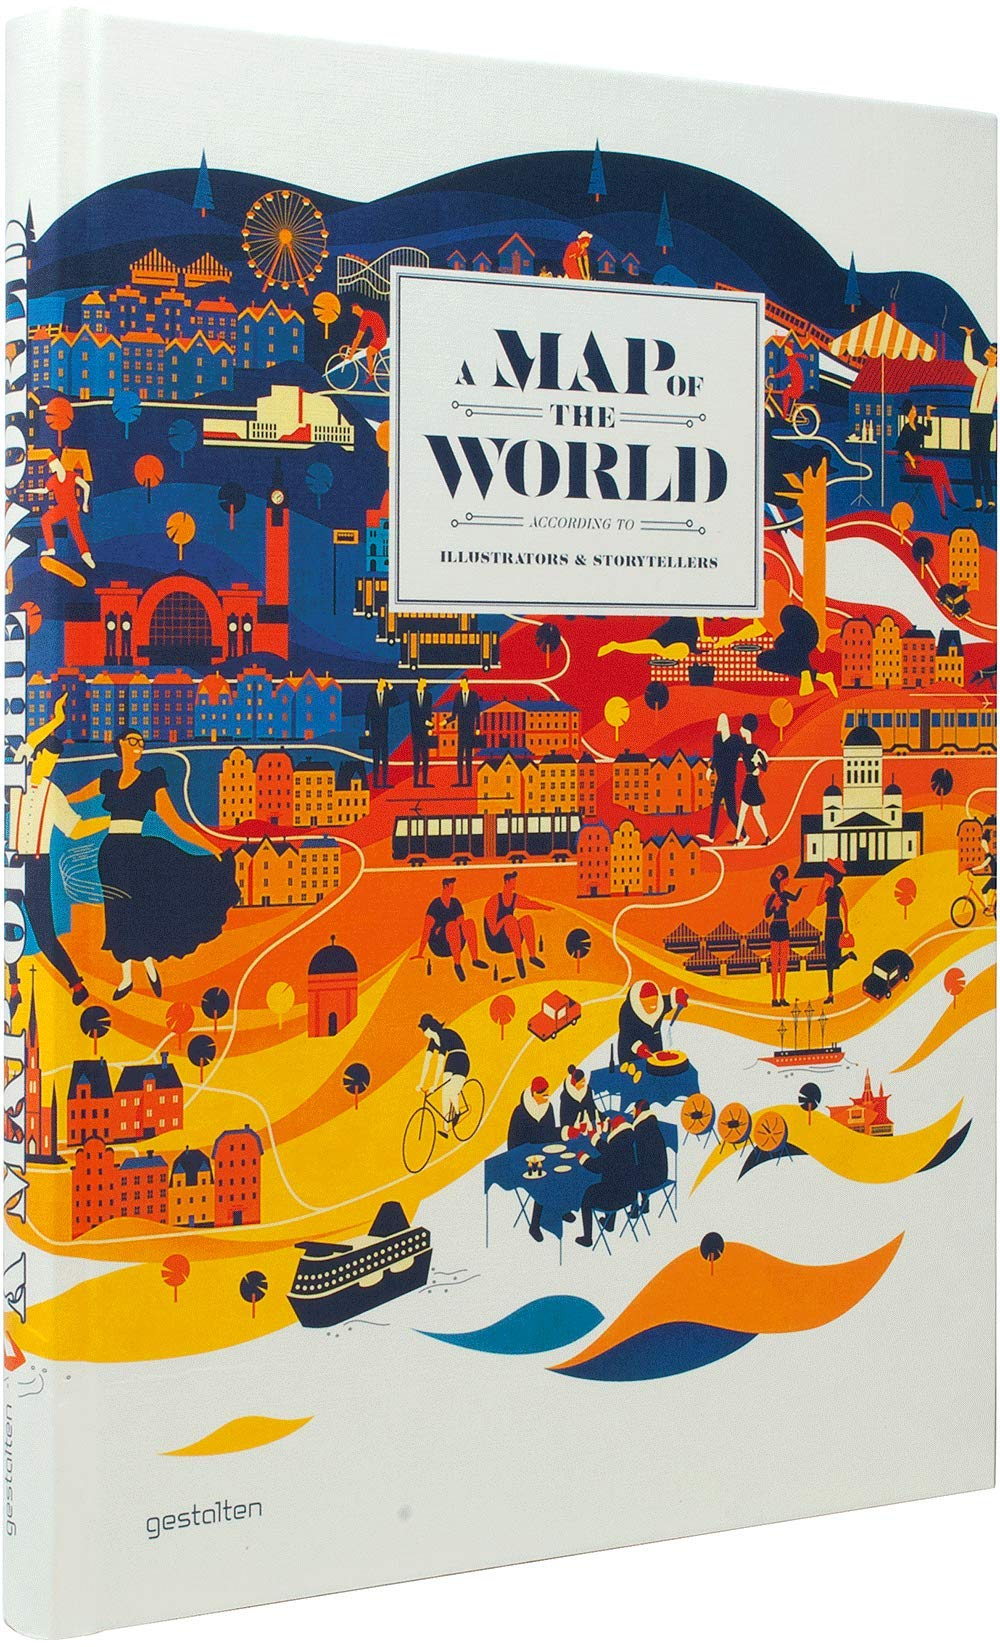 A Map Of The World According To Illustrators And Storytellers.A Map Of The World The World According To Illustrators And